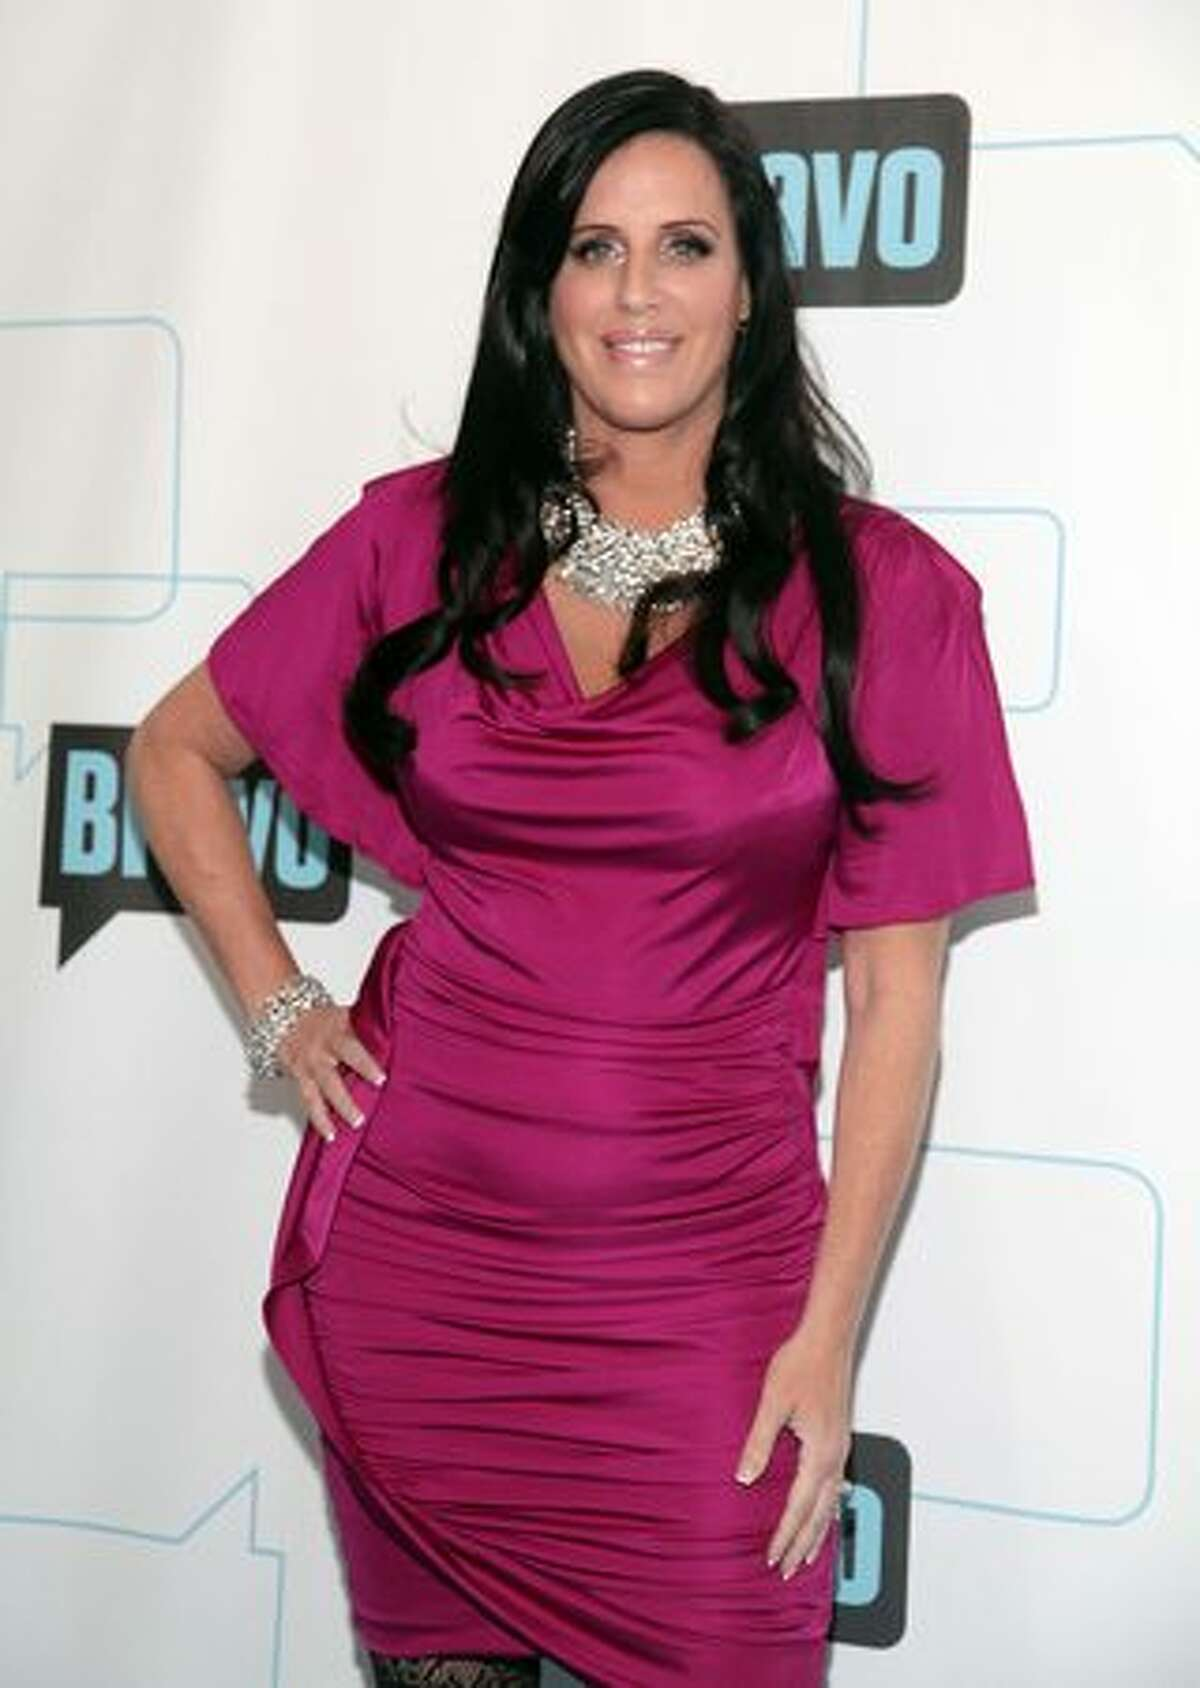 TV Personality Patti Stanger attends Bravo's 2010 Upfront Party at Skylight Studio in New York City.